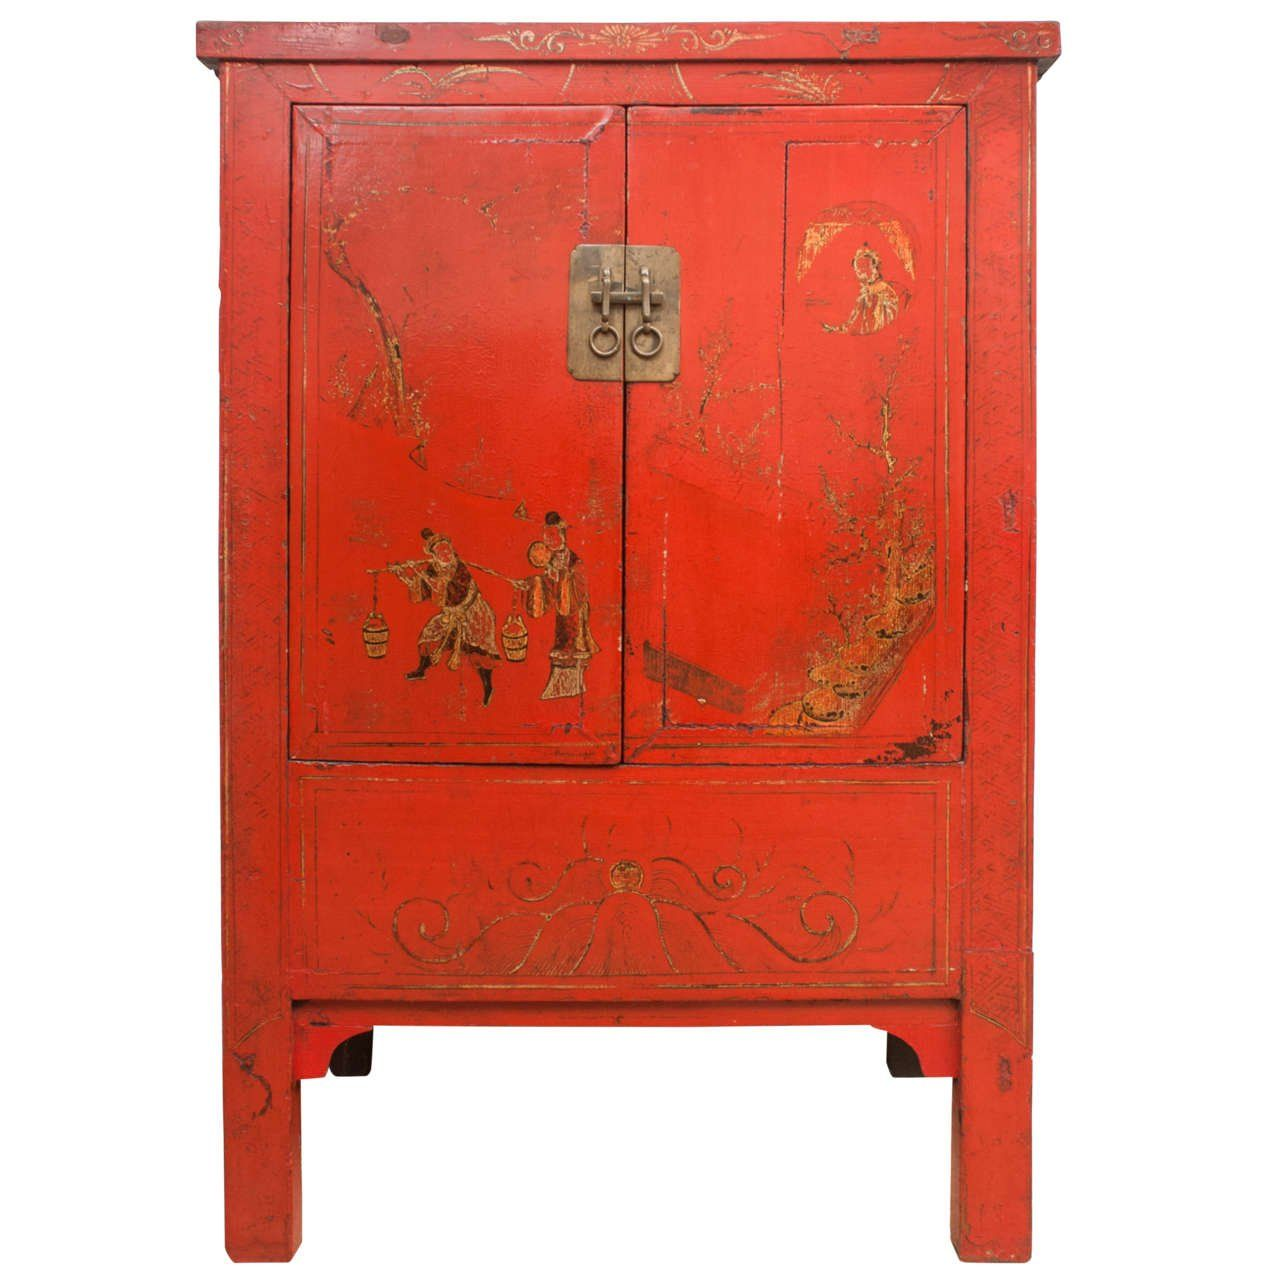 Charming Chinese Red Lacquer Cabinet With Gilt Painting, 19th Century